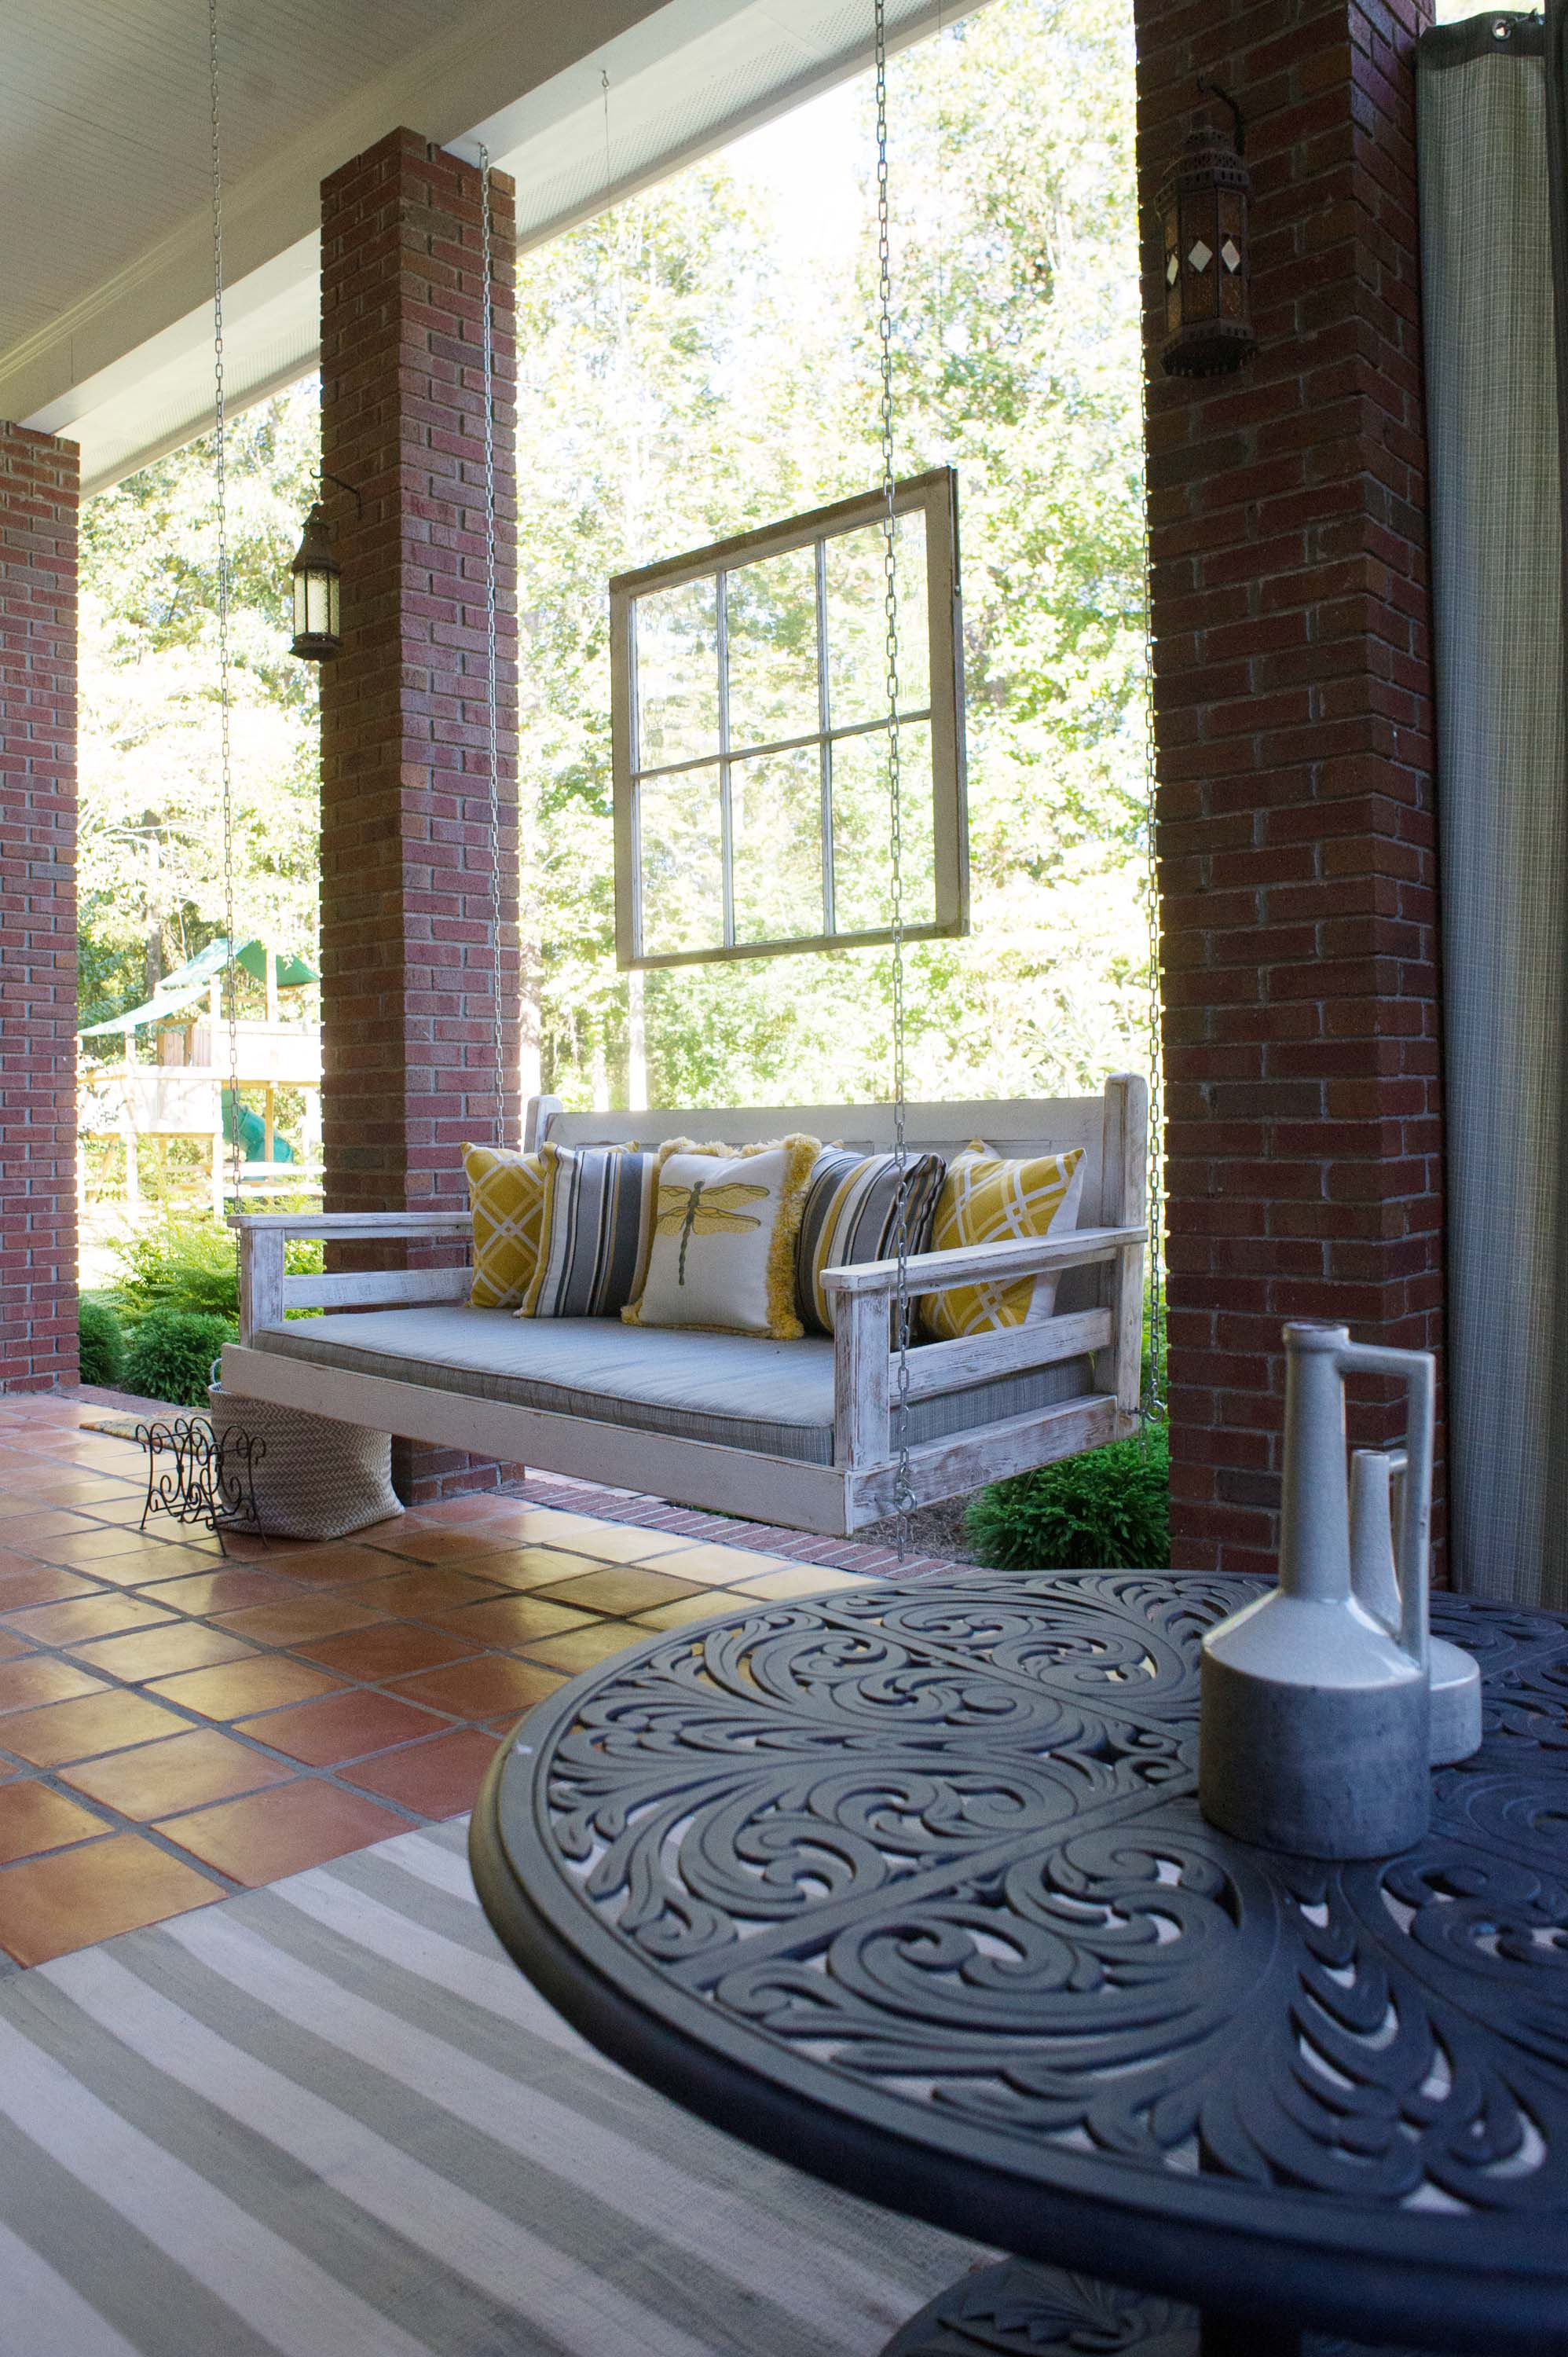 Outdoor patio with hanging sofa and modern style round table